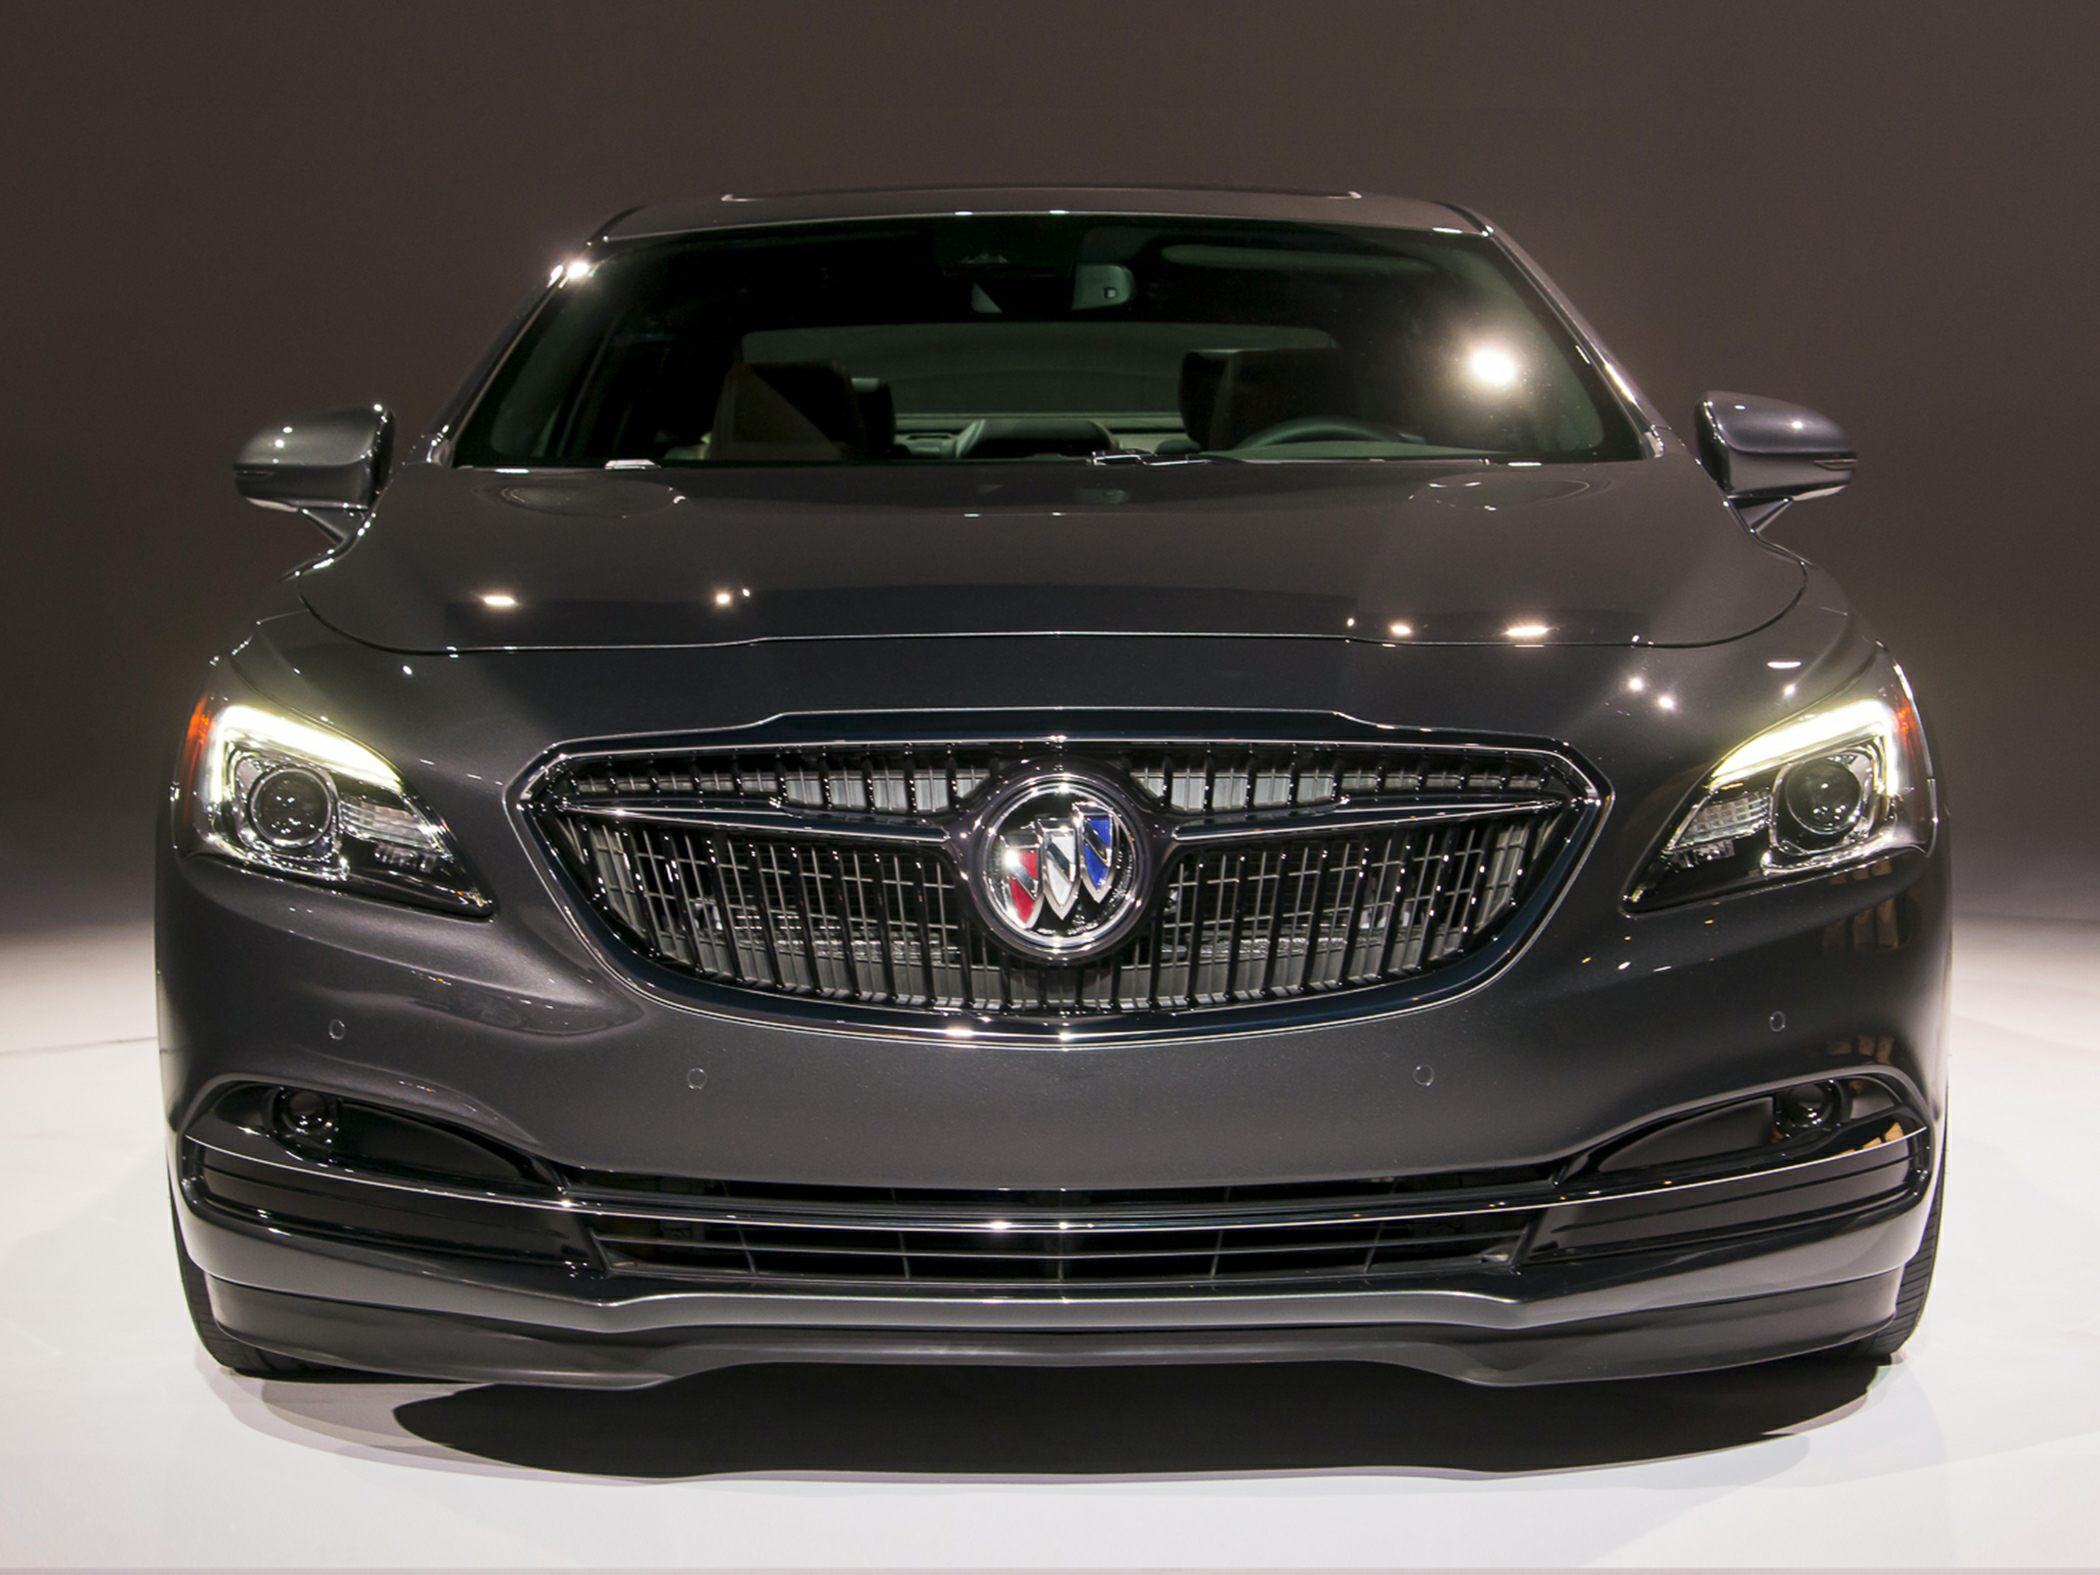 2018 Buick LaCrosse Pictures & Photos - CarsDirect